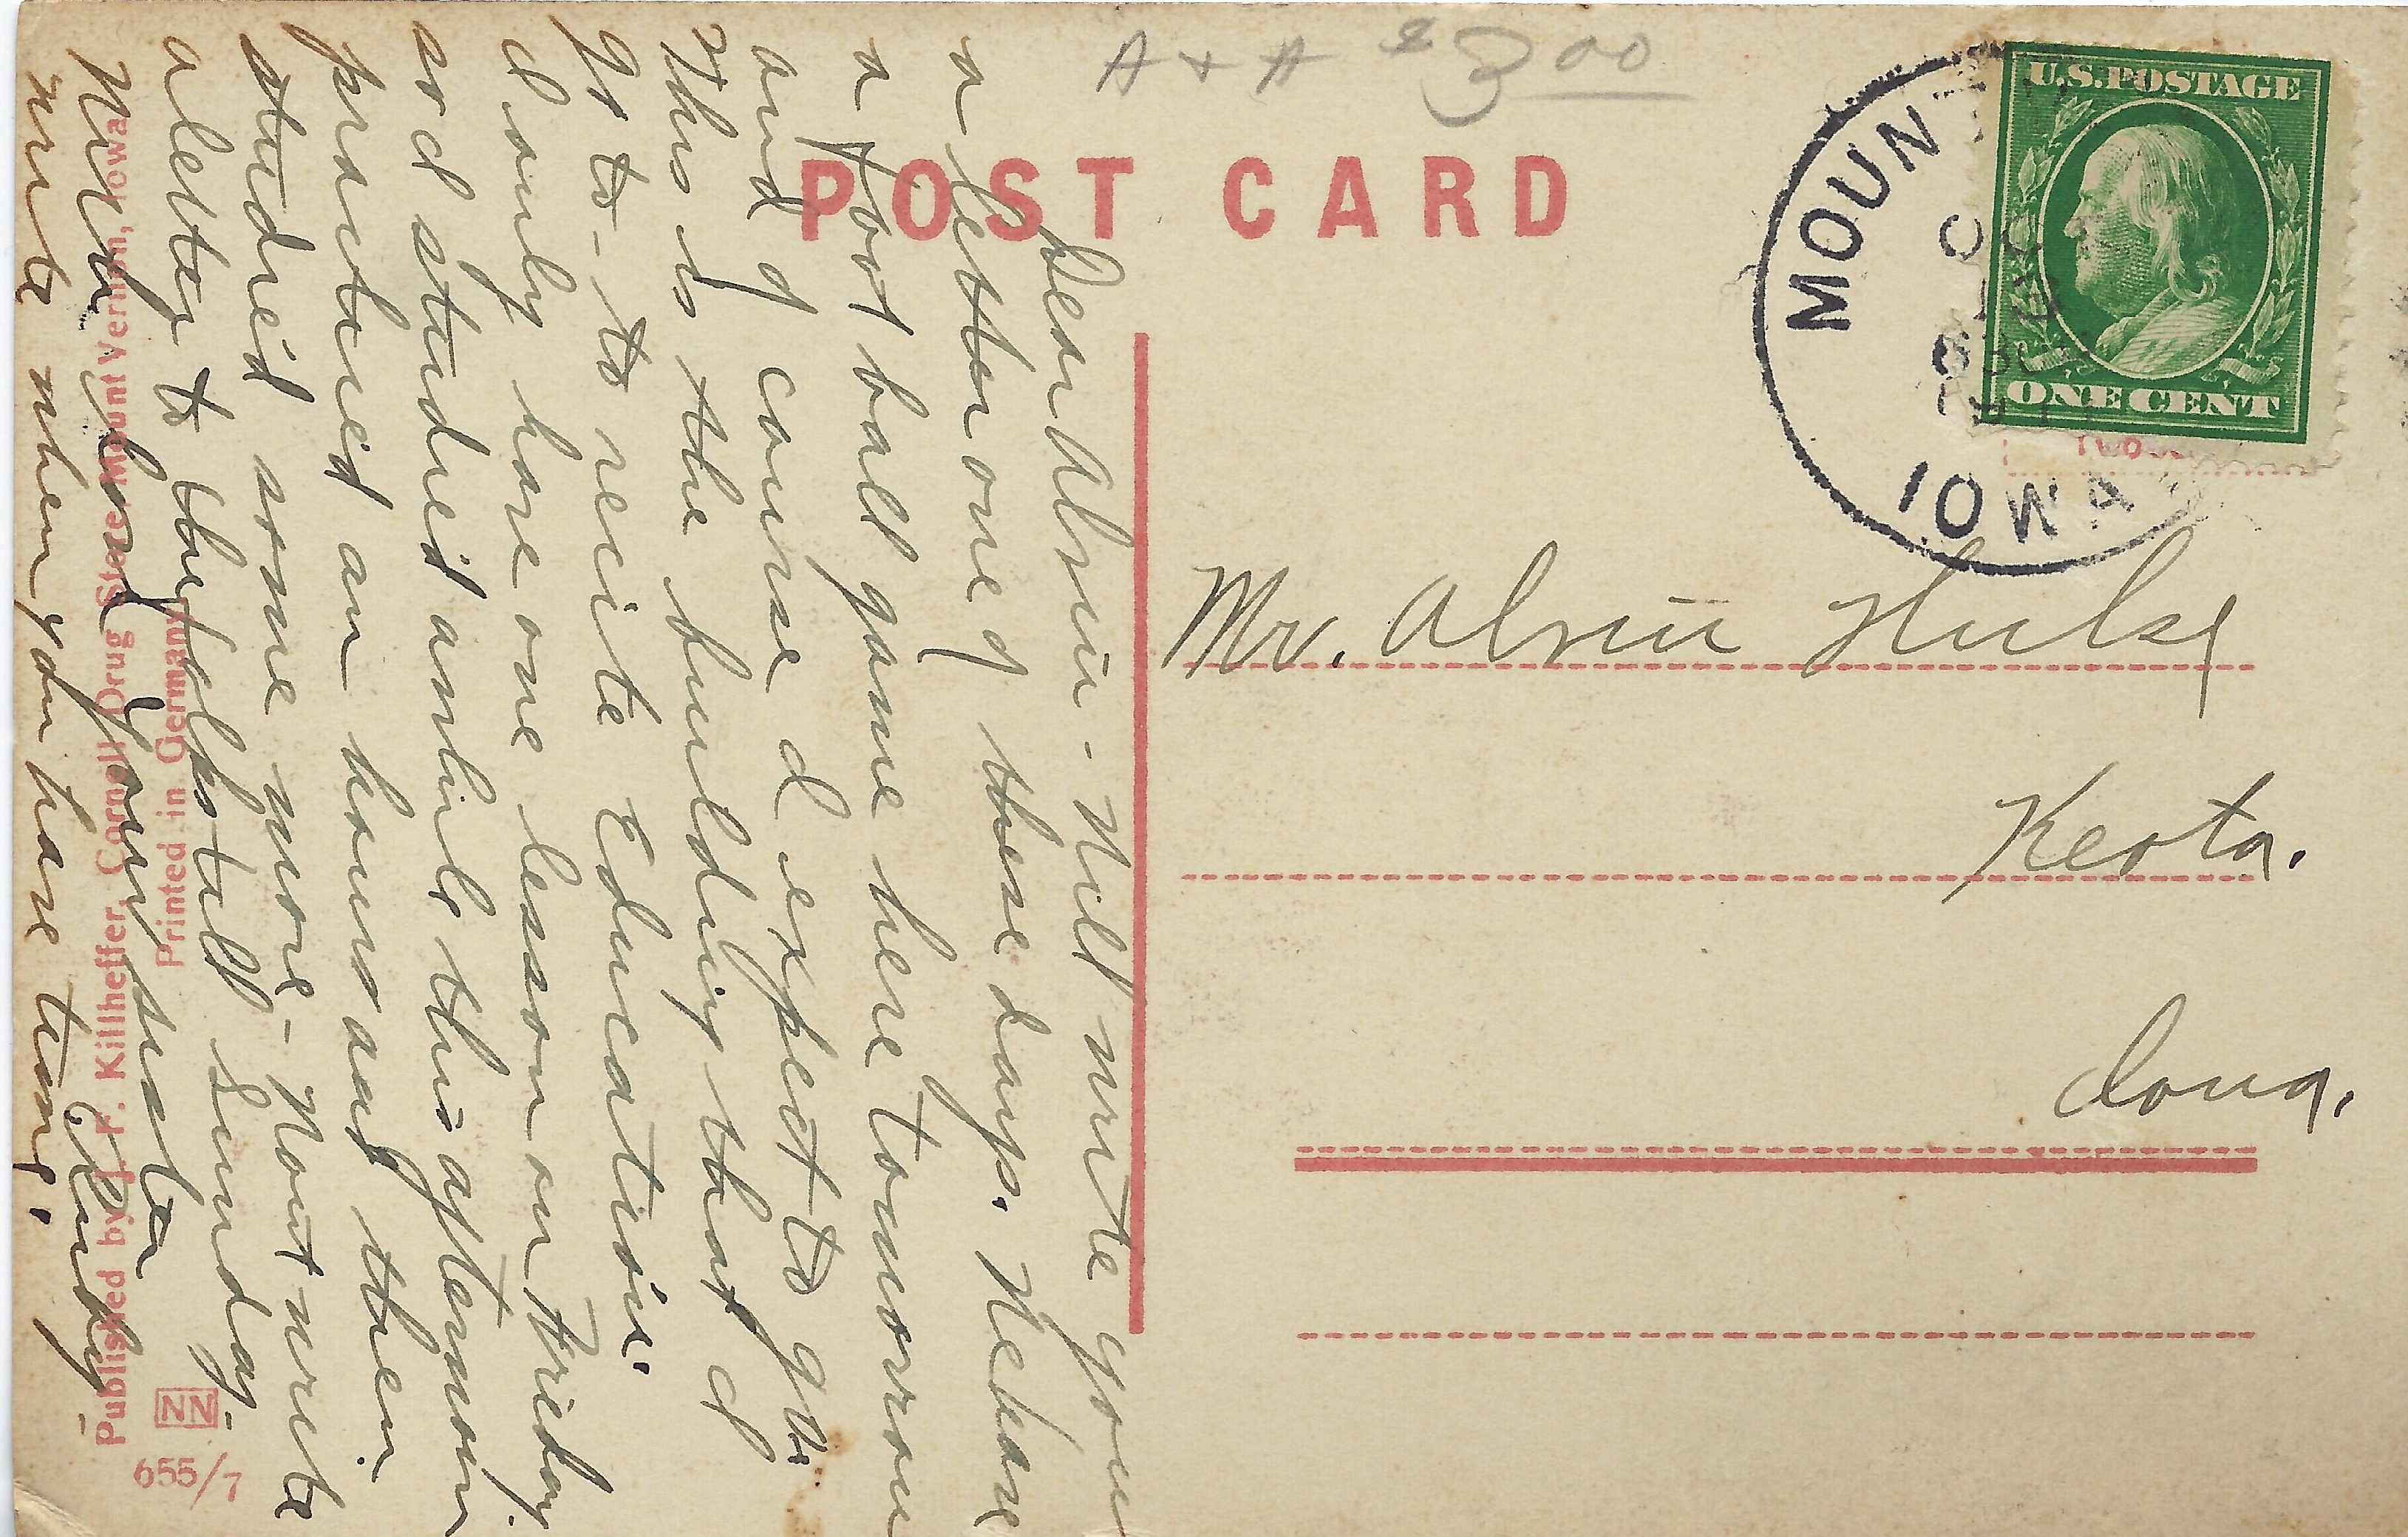 Photo of back of South Hall postcard